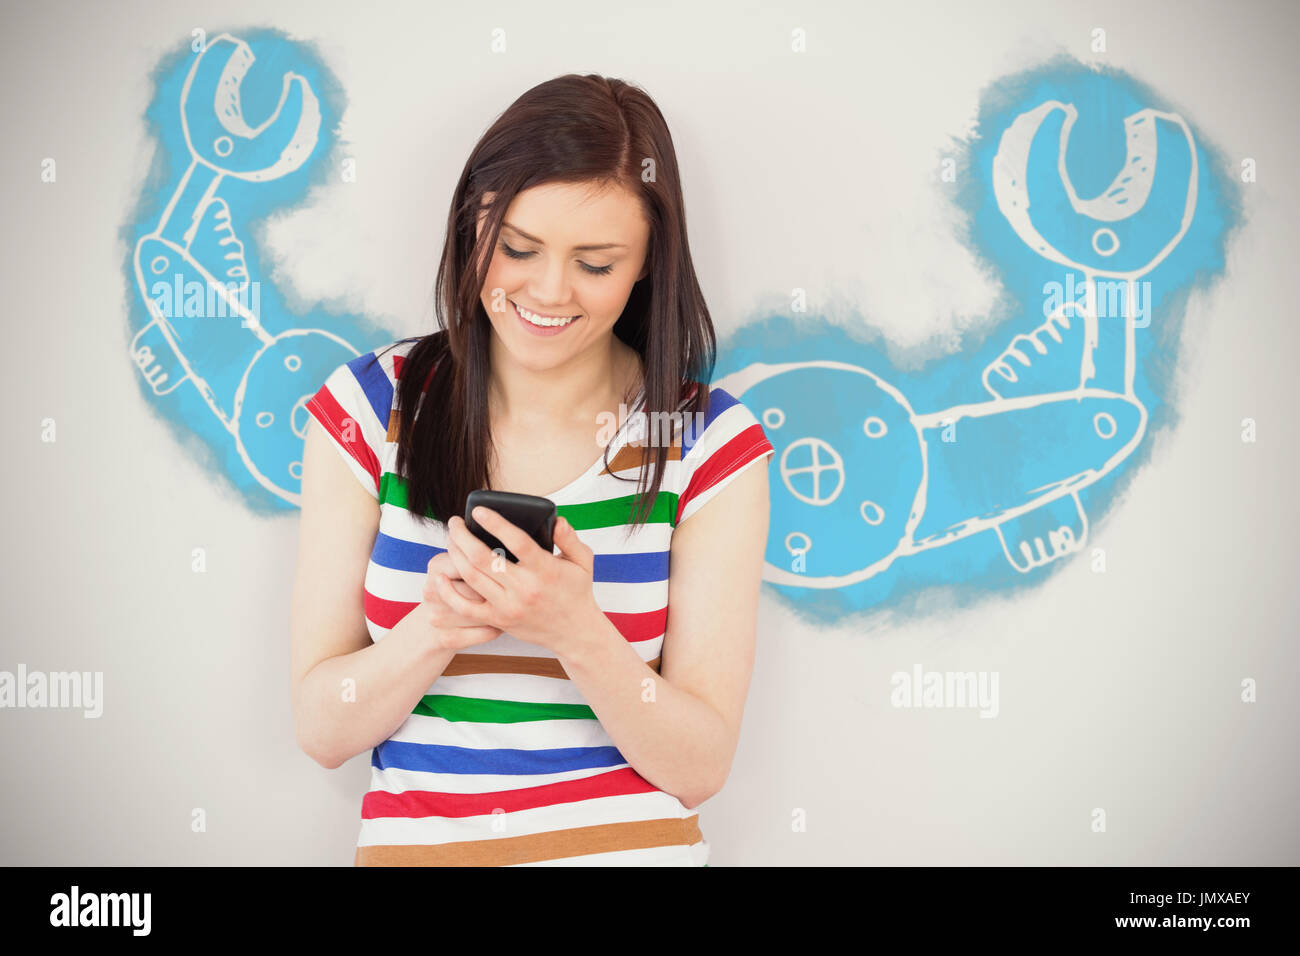 Work tool against white background against smiling girl using her mobile phone - Stock Image